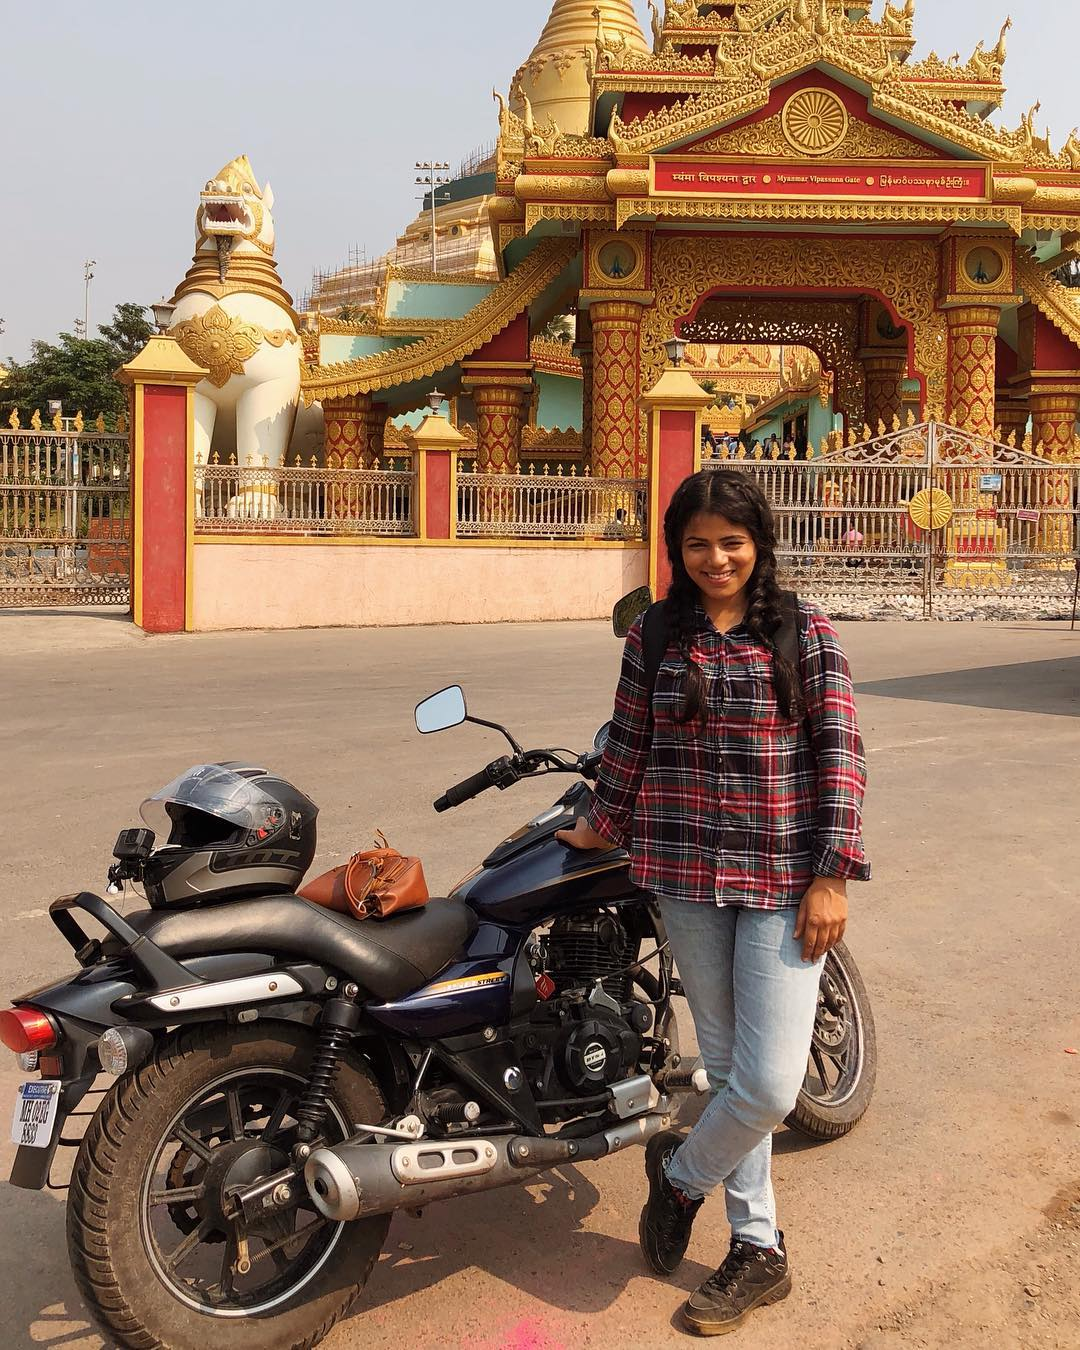 My Solo Motorcycle Ride To The Global Vipassana Pagoda in Gorai